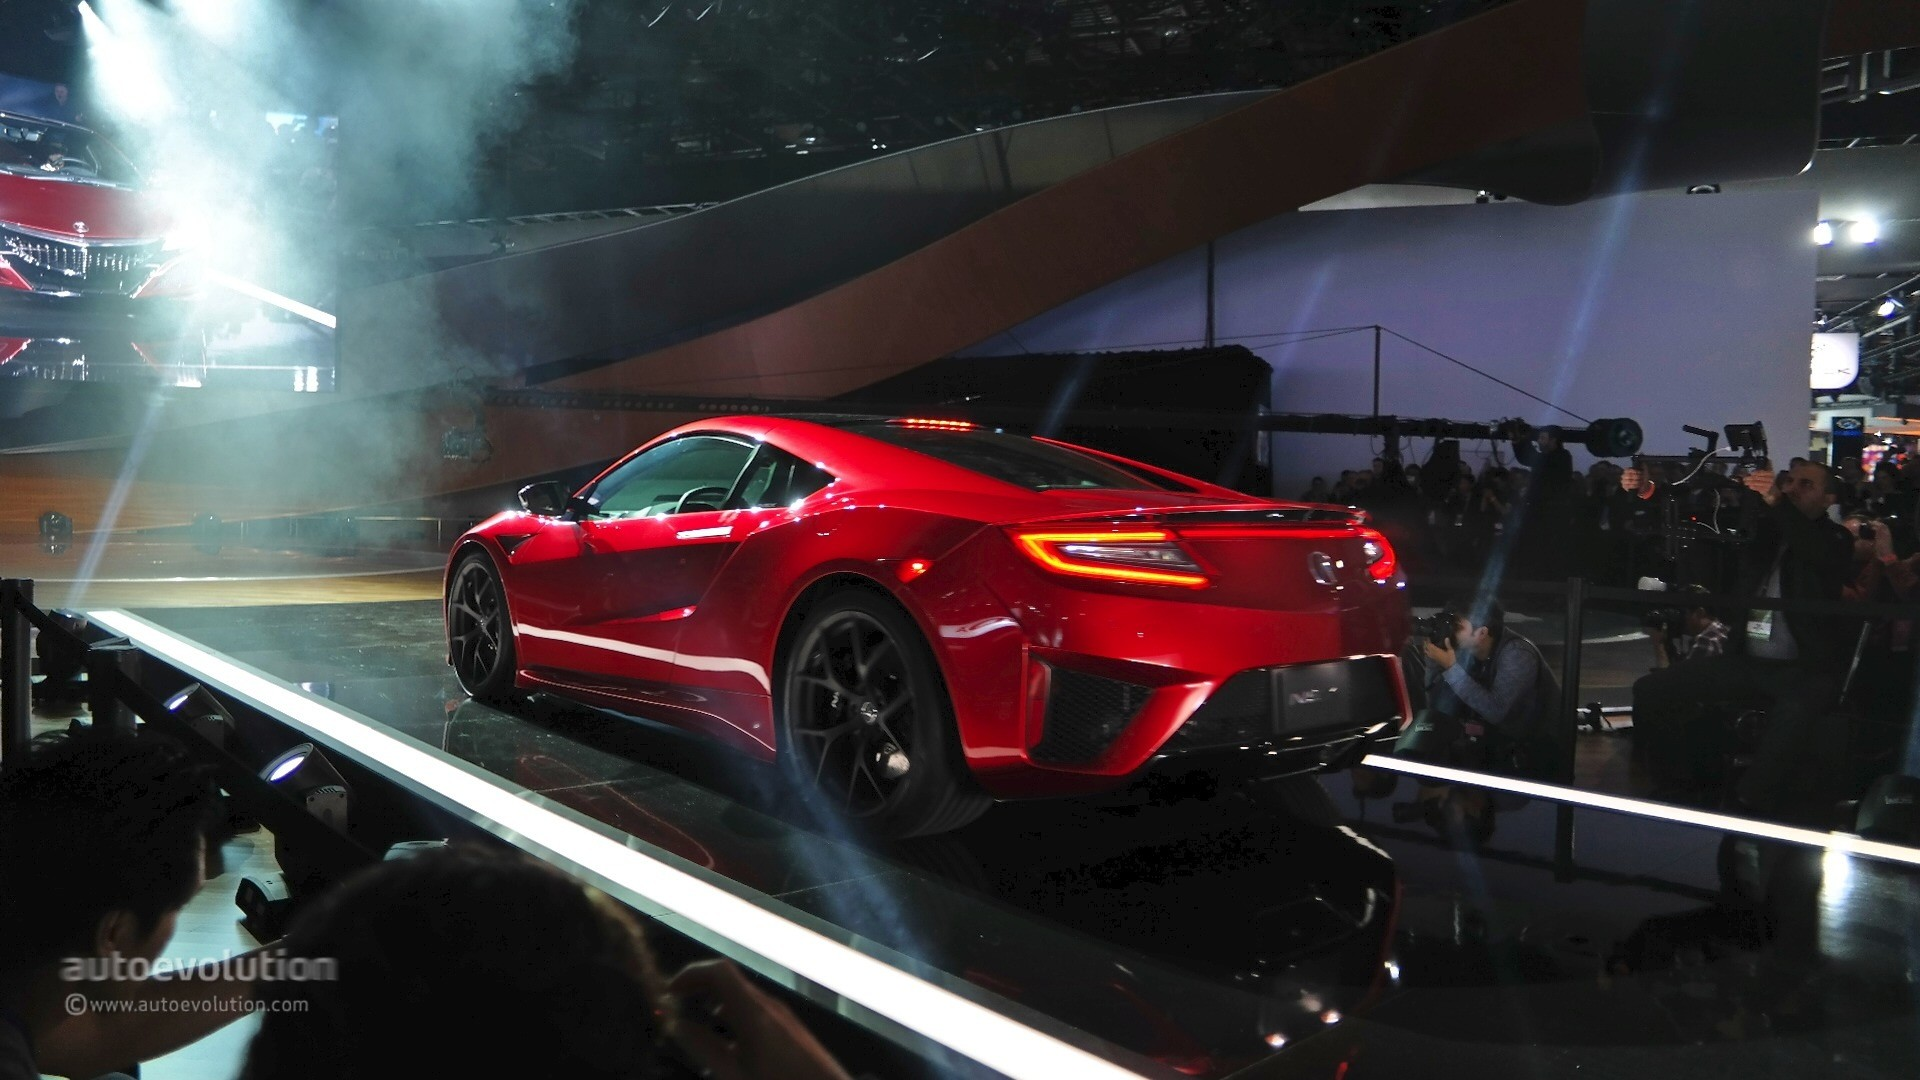 Honda Nsx Type R Rumors Intensify Could Debut In 2019 With 650 Ps